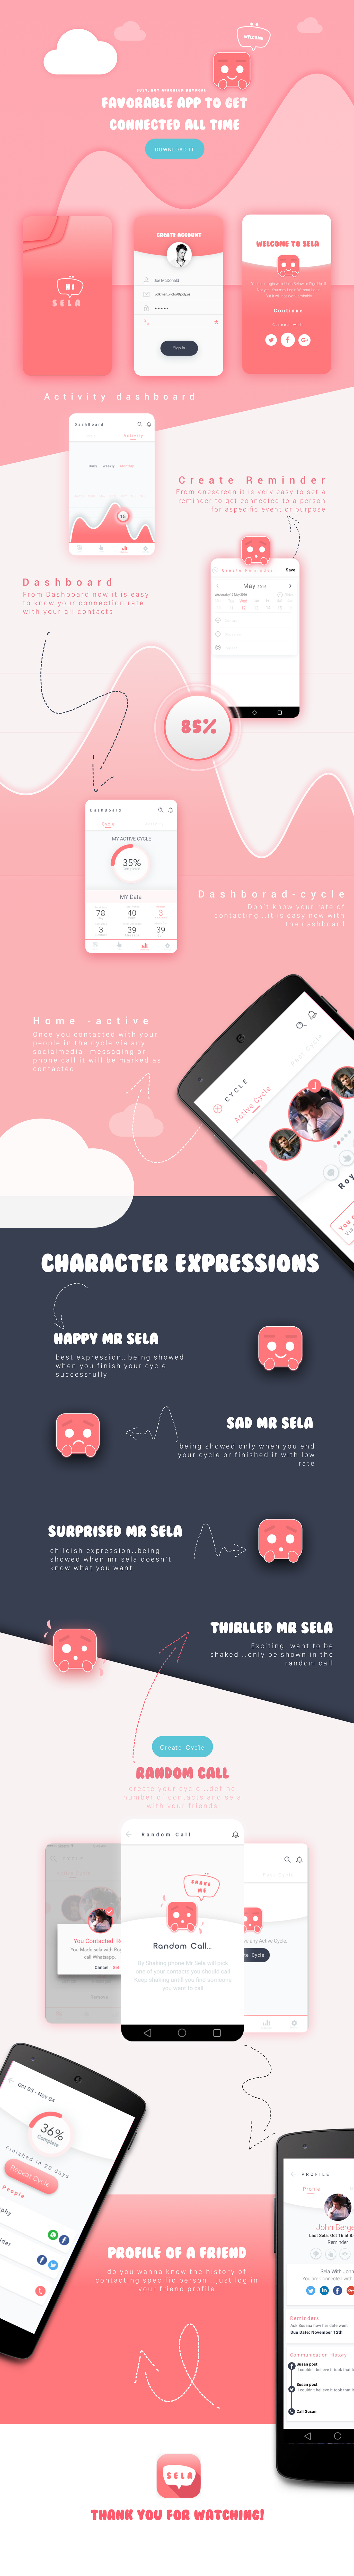 android ios Mobile app Character design  cheerful red UI ux